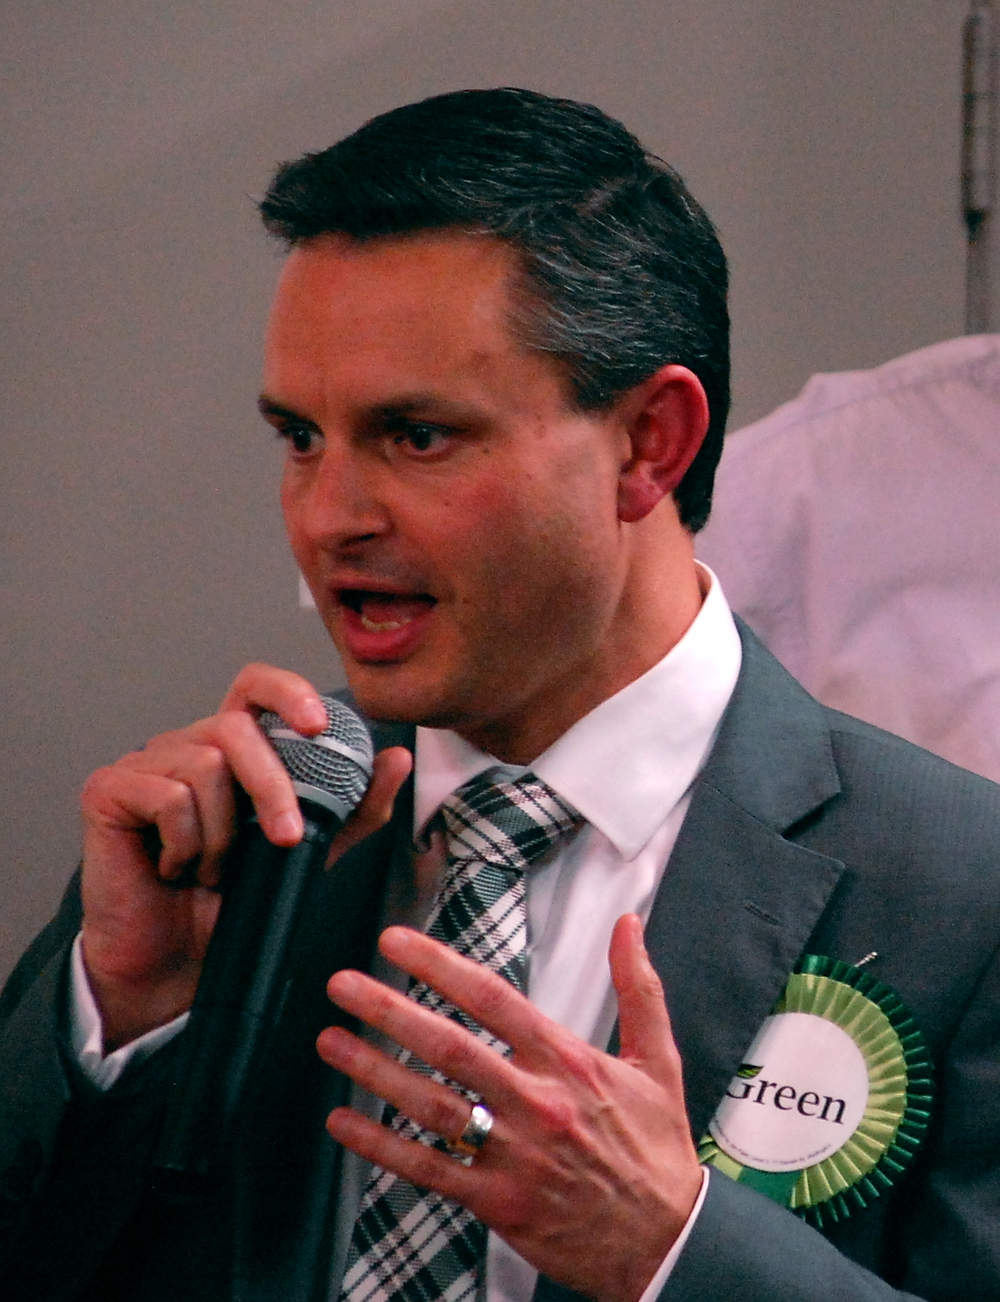 James Shaw - New Zealand Minister for Climate